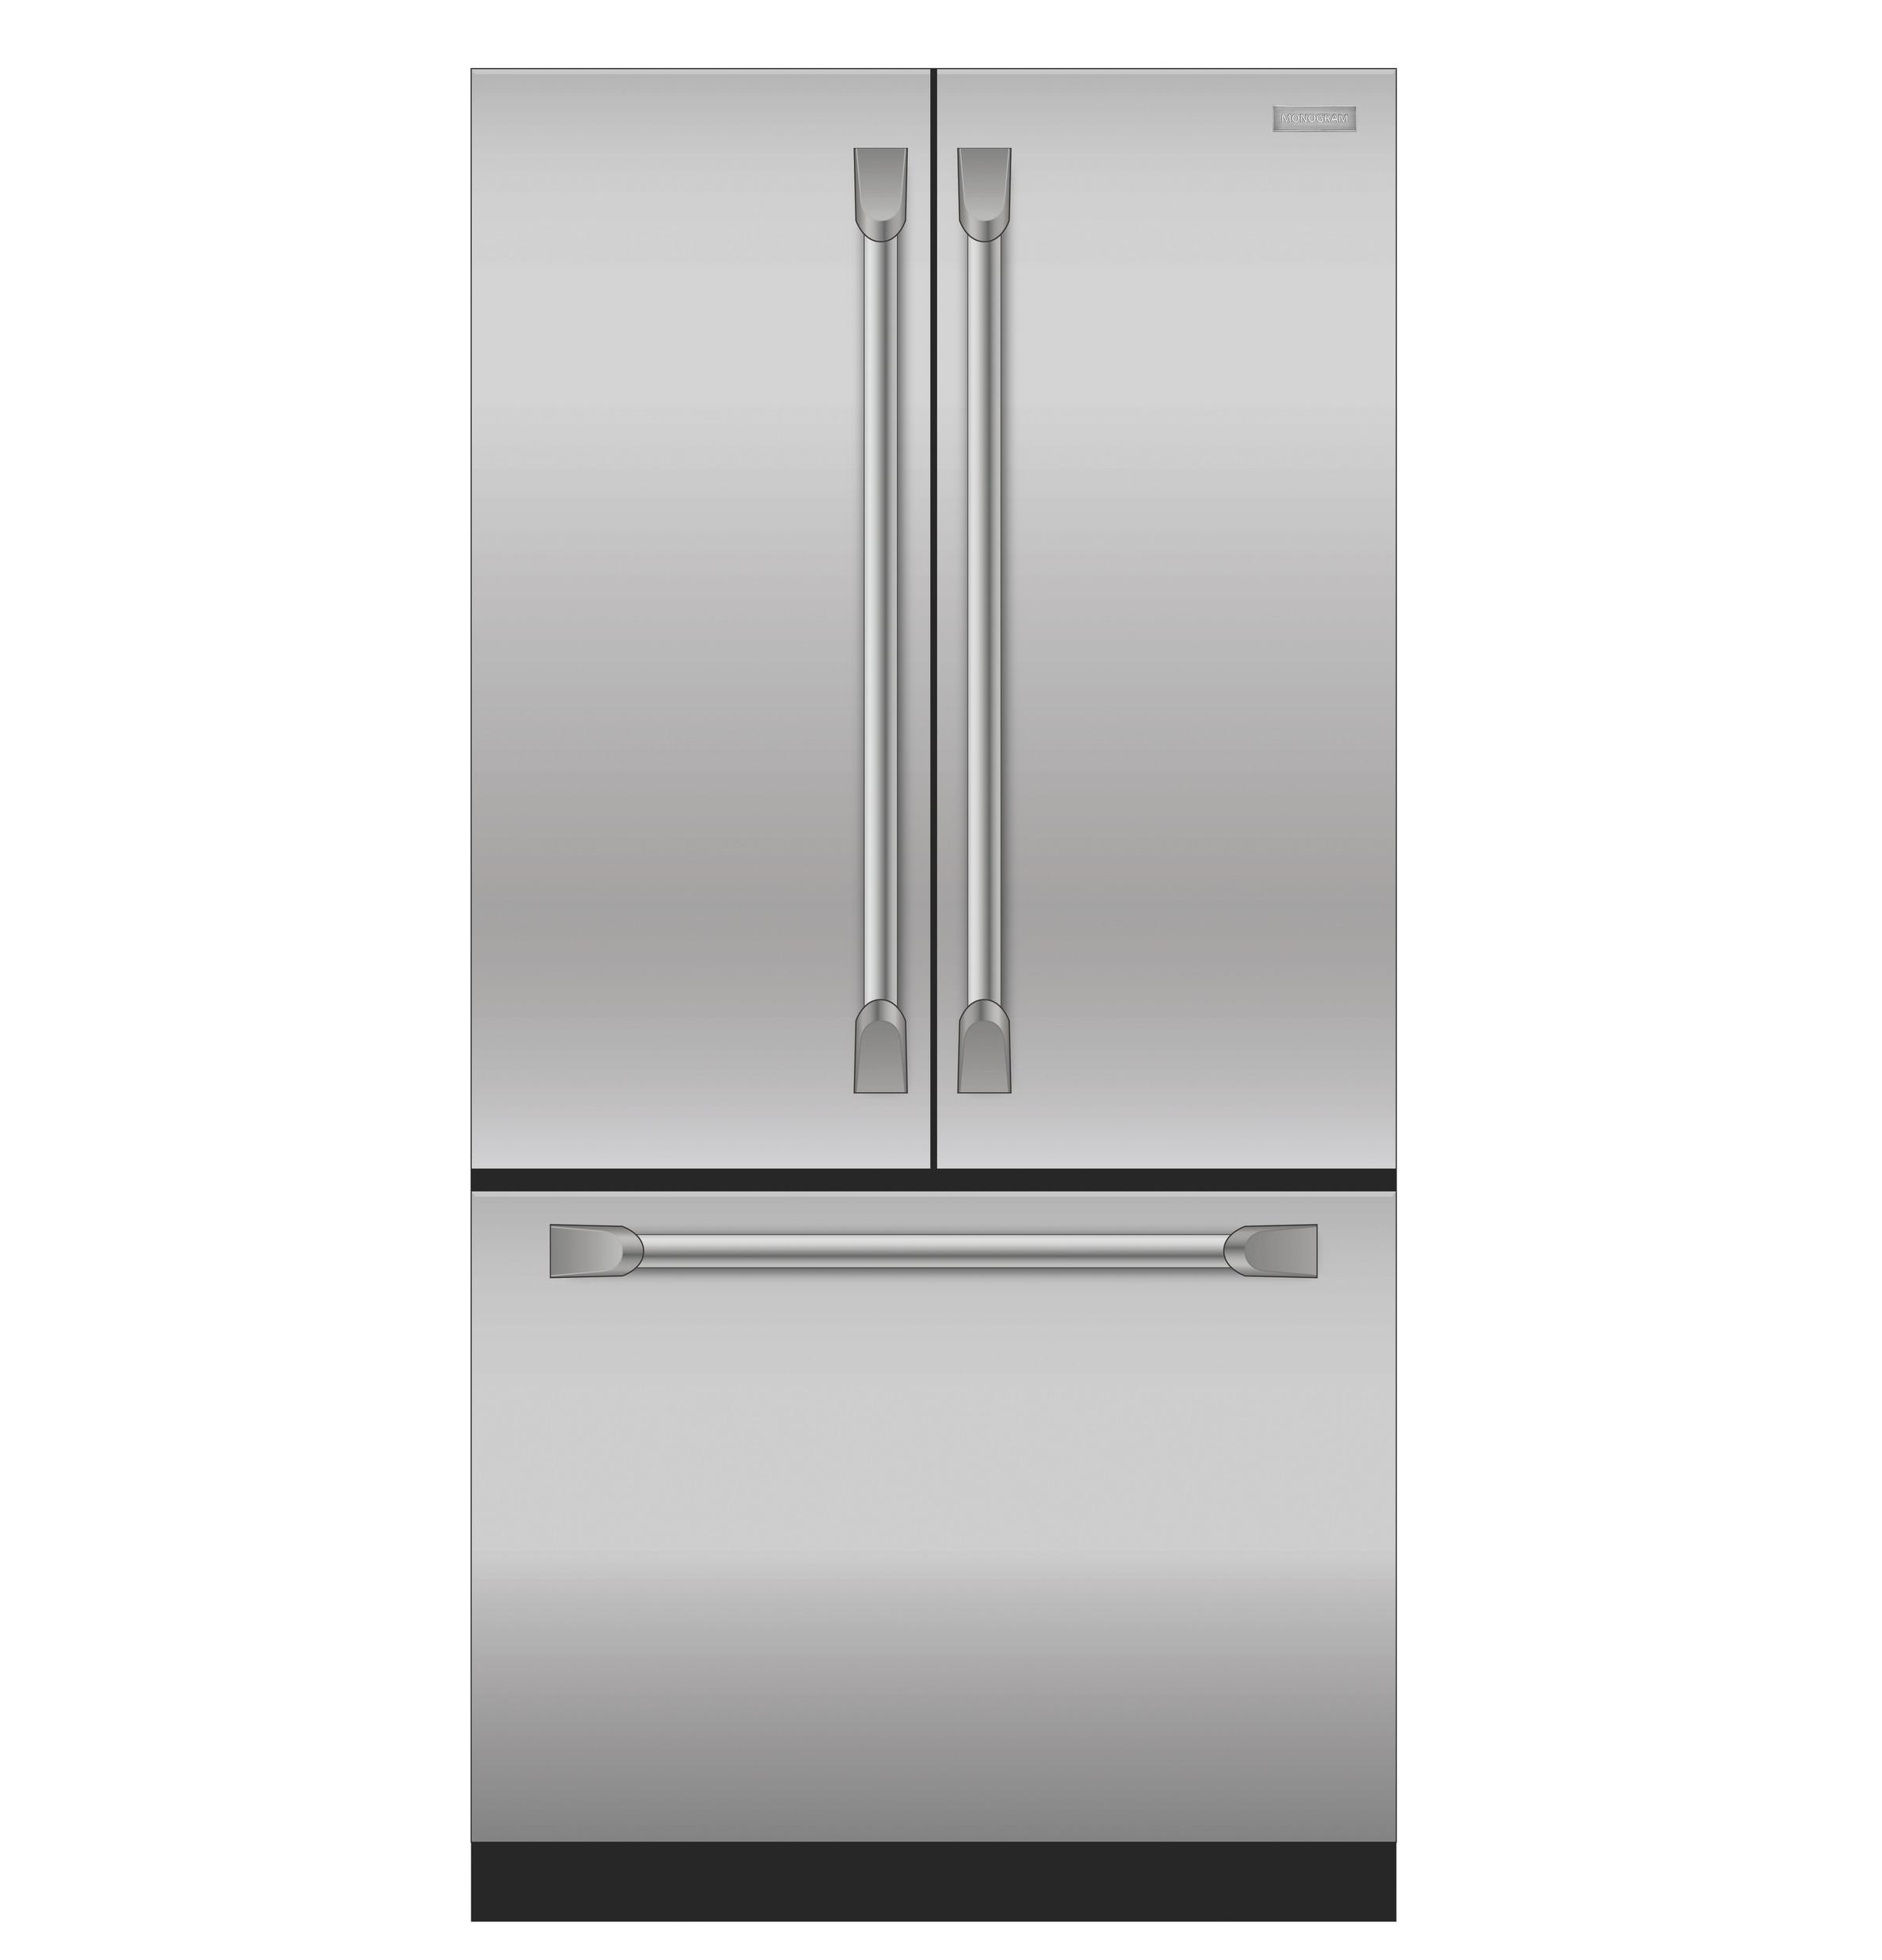 Ge Appliances Monogram Energy Star 174 23 1 Cu Ft Counter